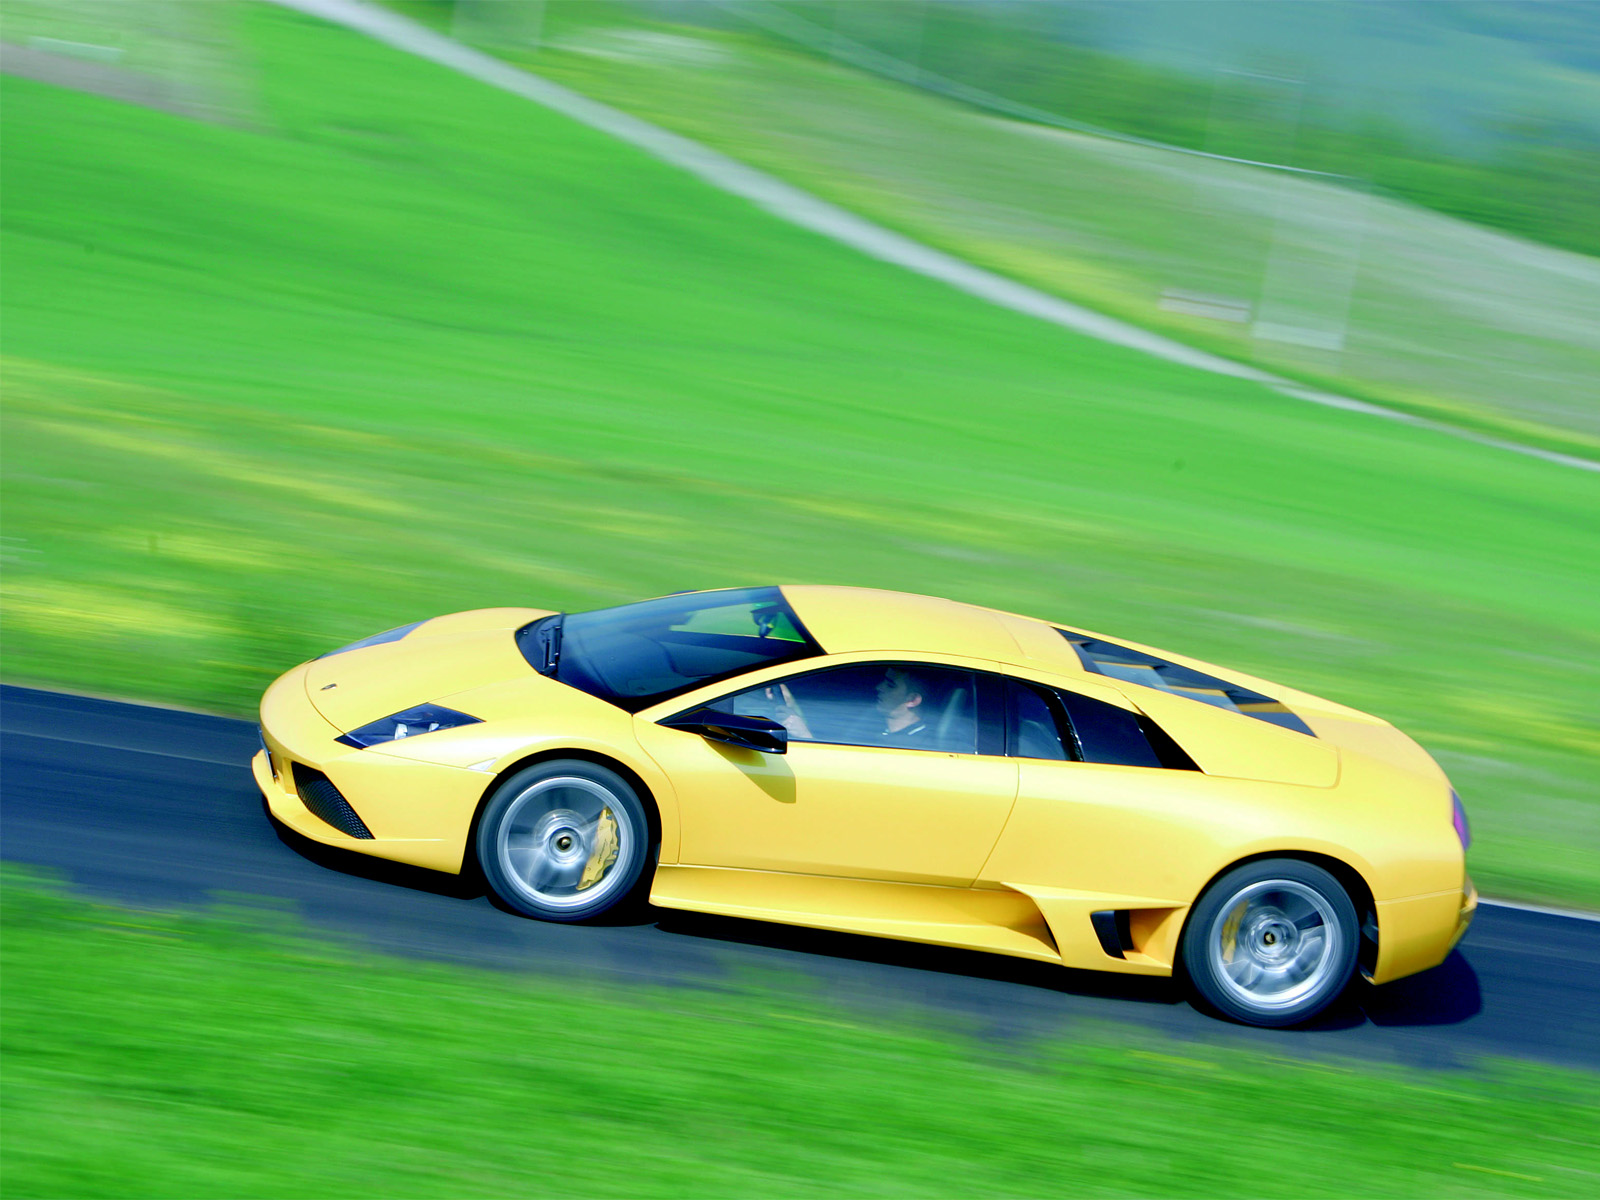 Cool Car Wallpaper High Definition 5844